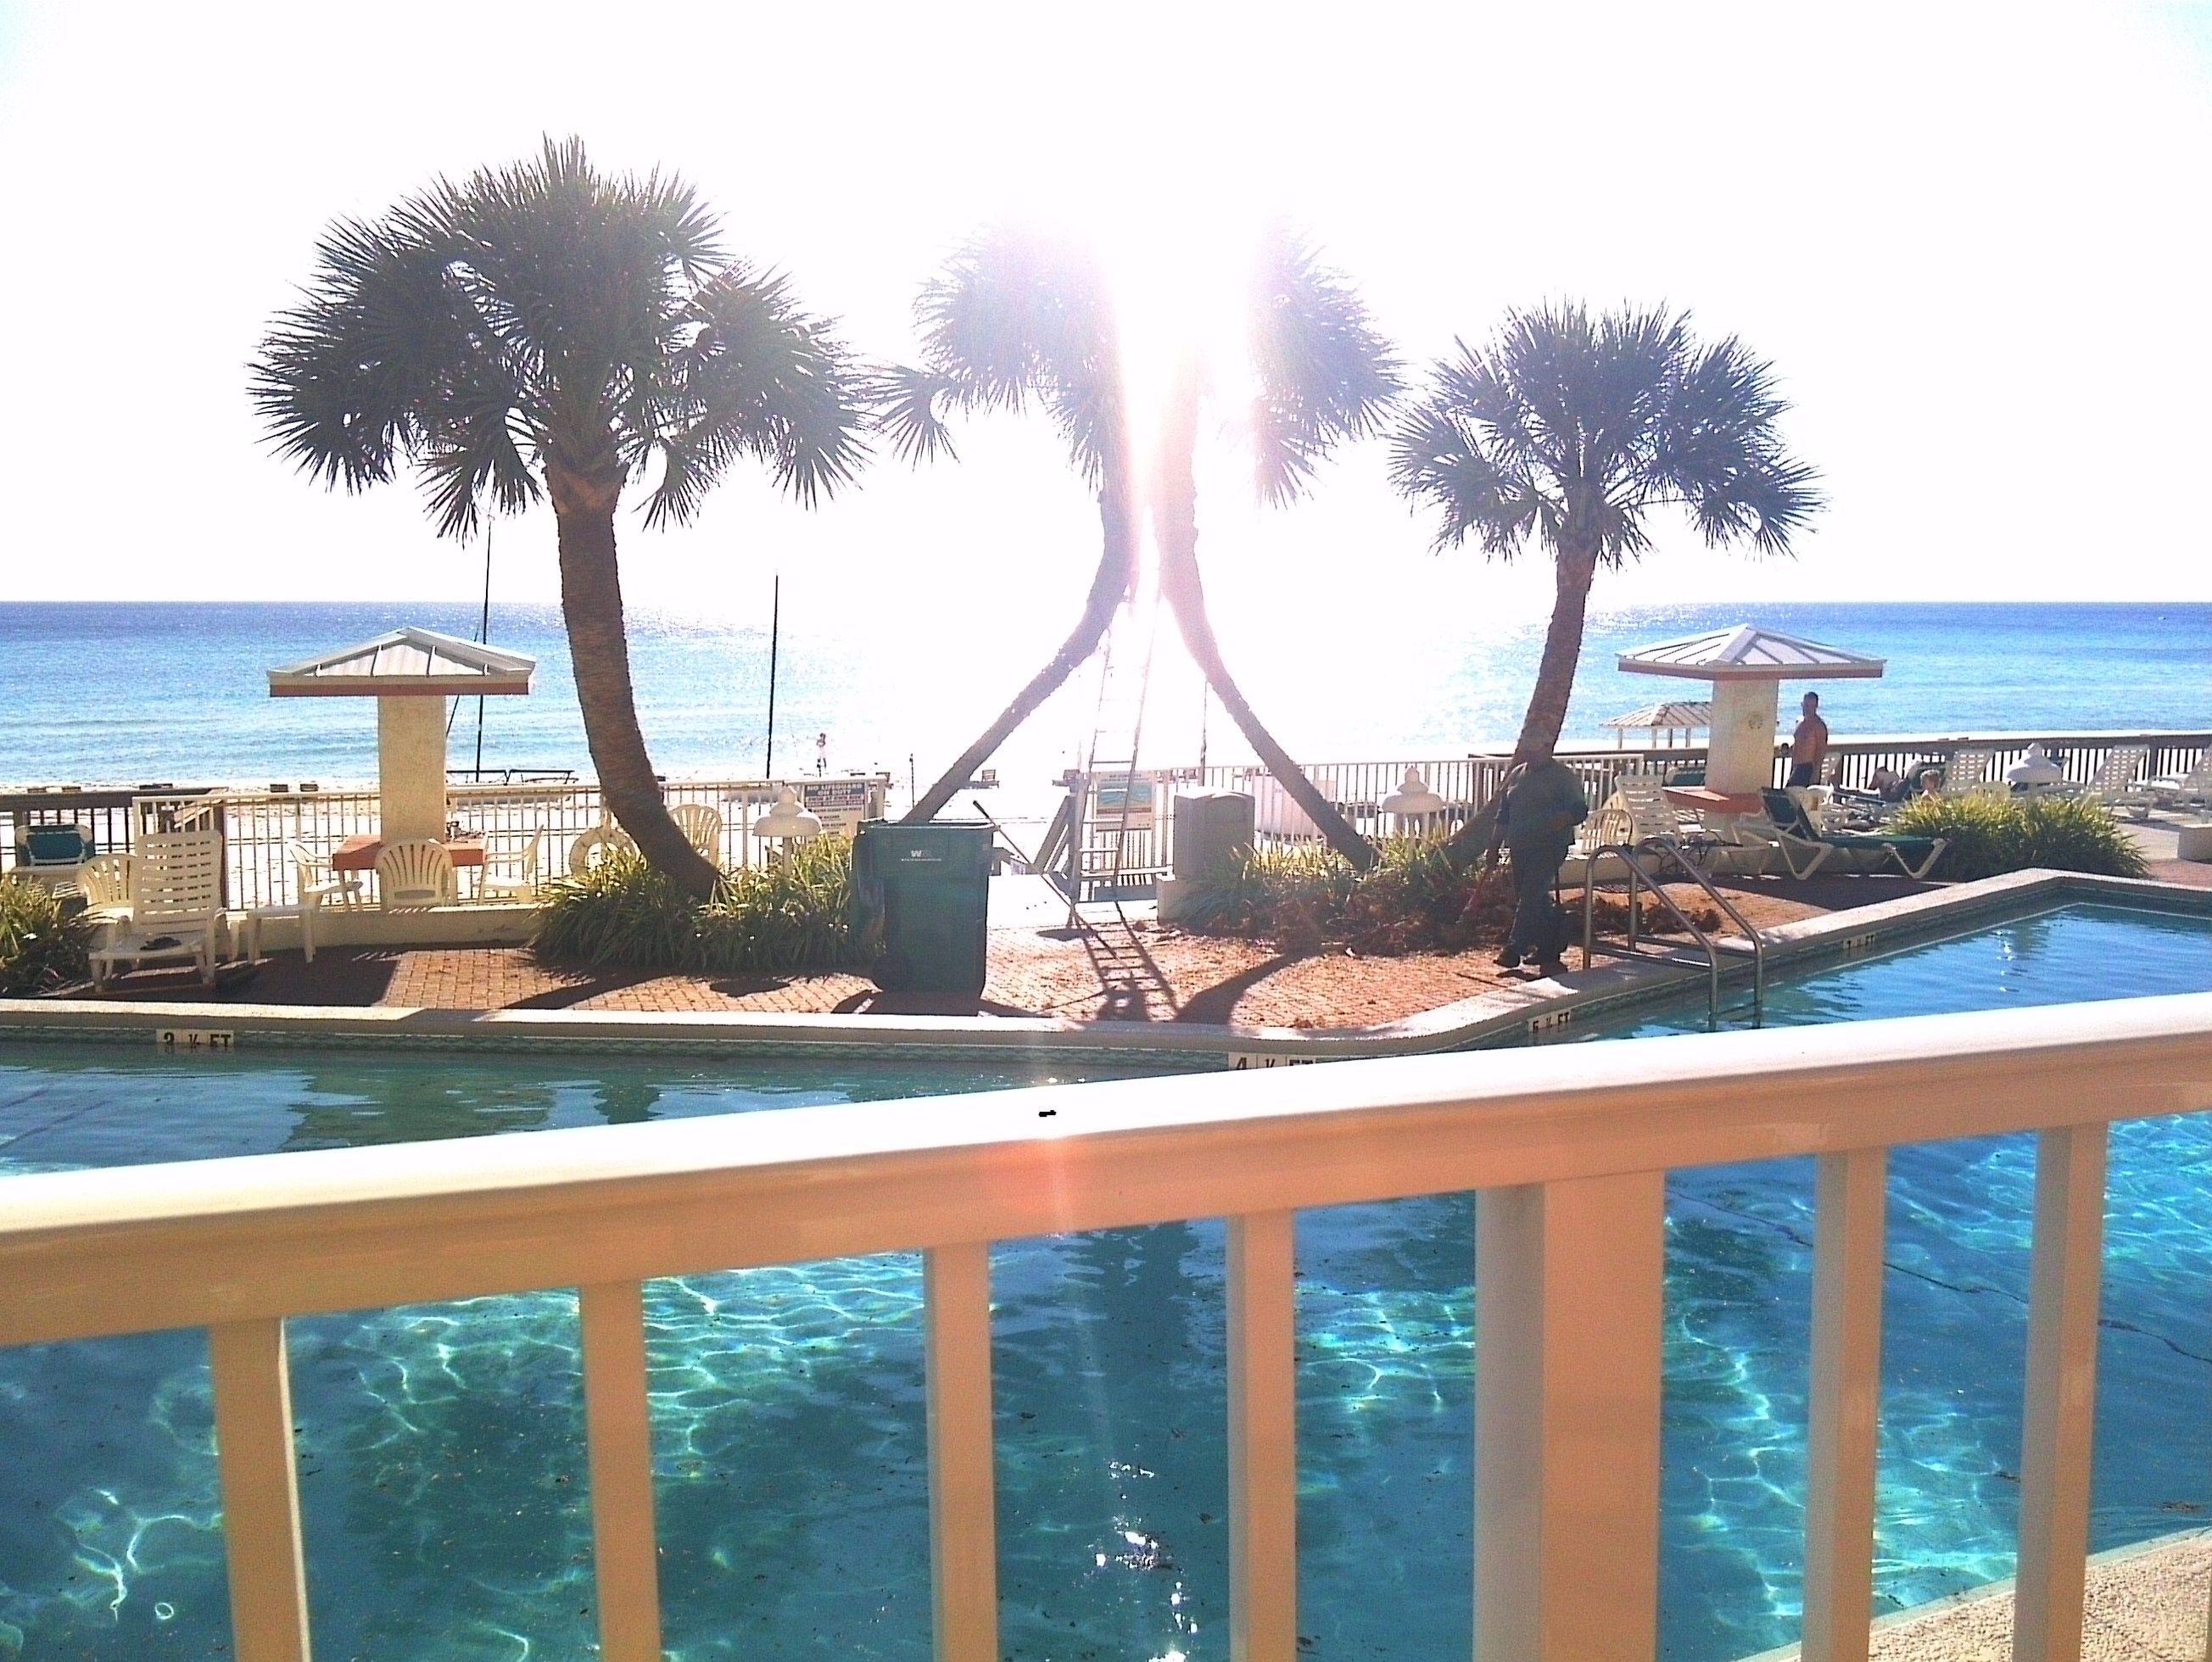 Panama City Beach Florida Palmetto Inn One Of My Favorite Places In The World